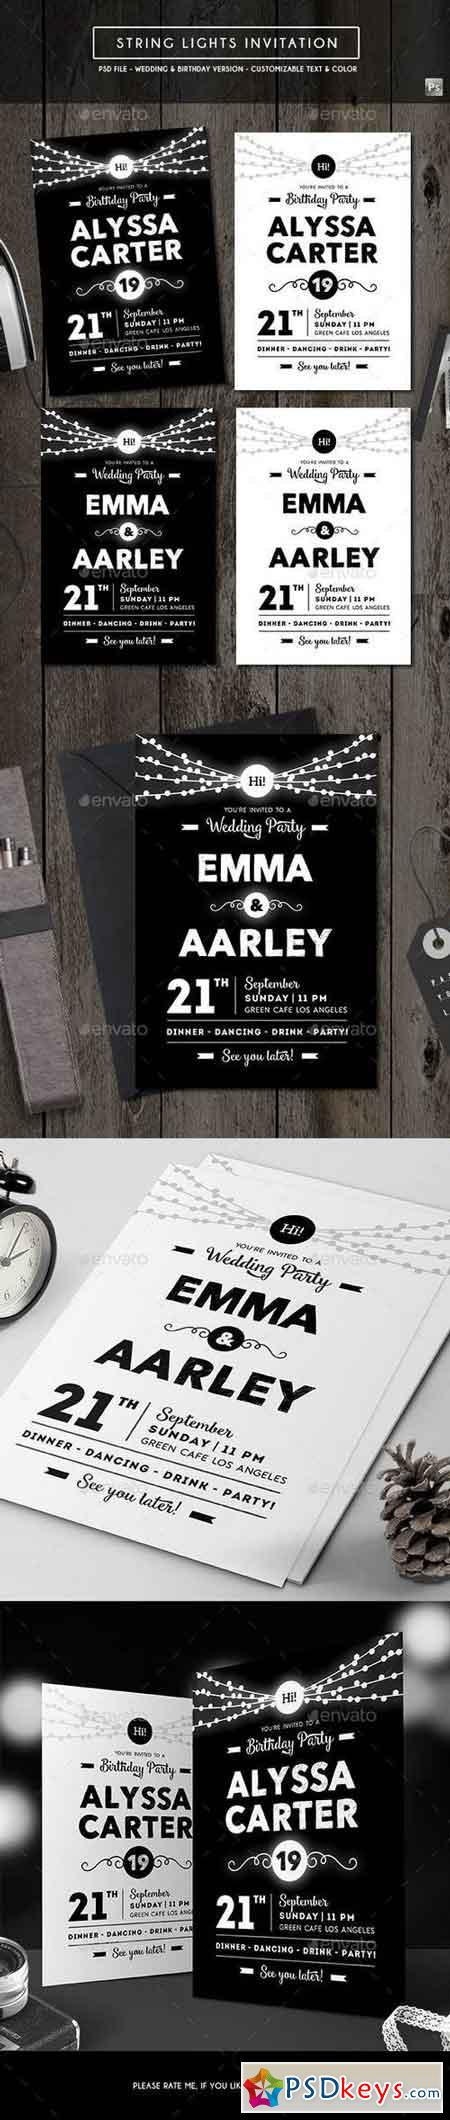 String Lights Invitation (Wedding & Birthday) 17774189